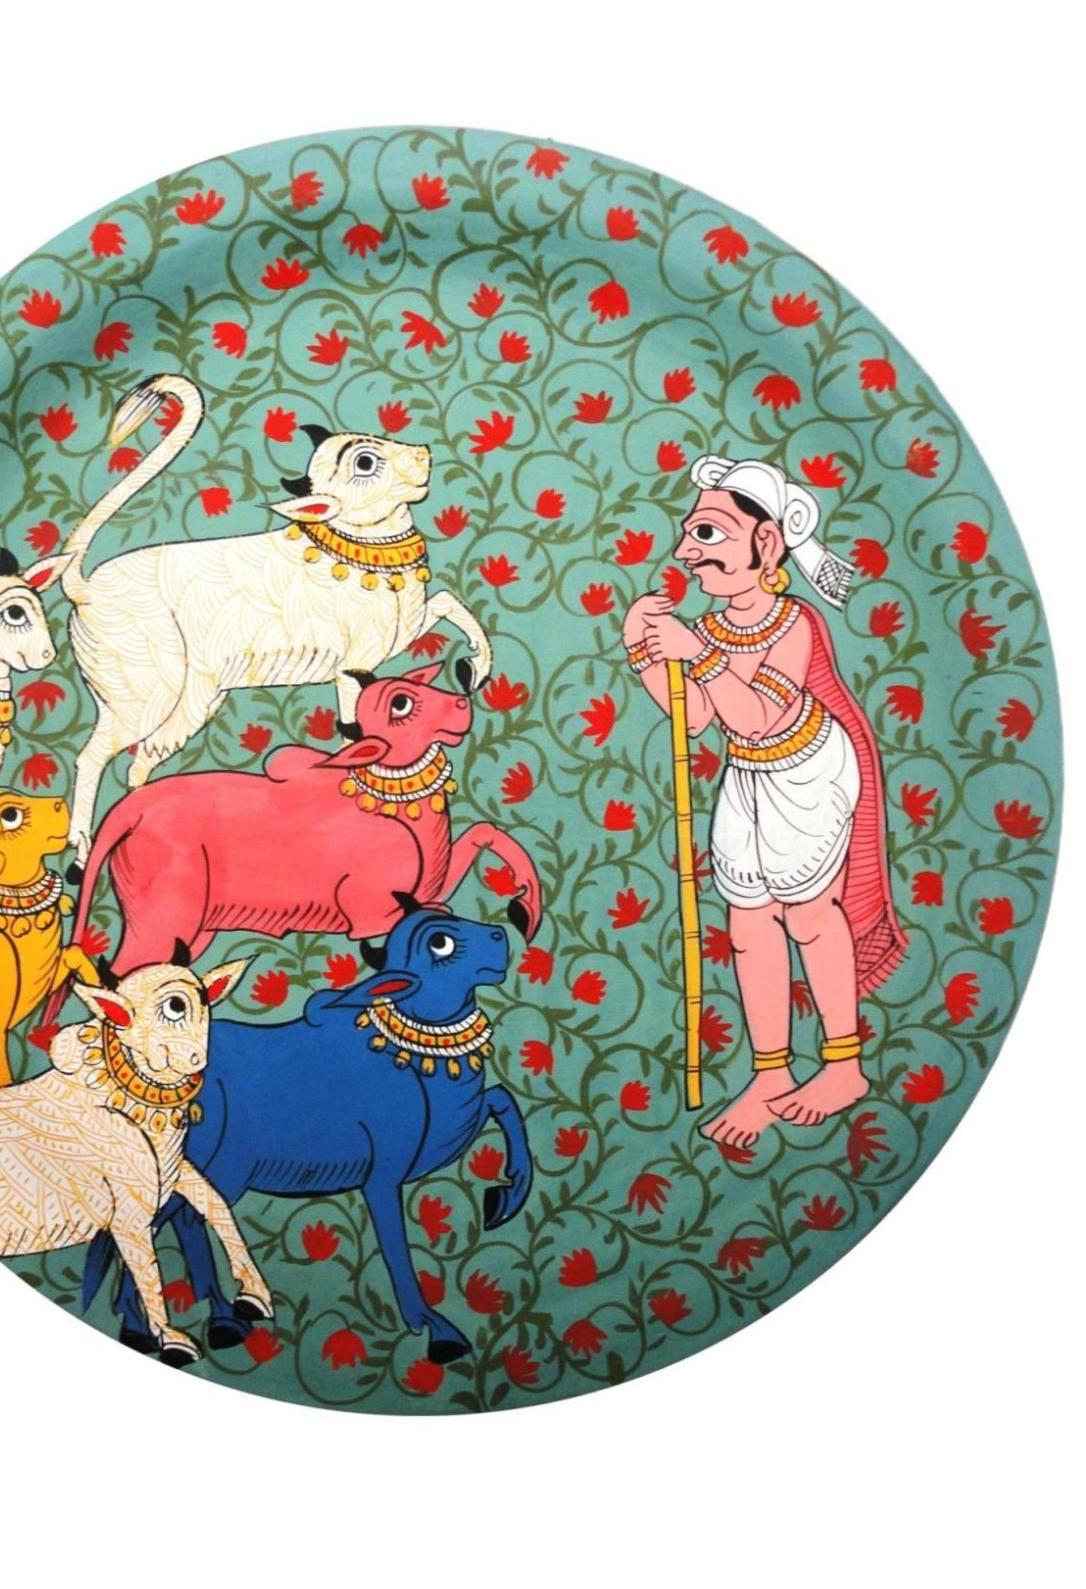 Herdsman in Cheriyal Painting